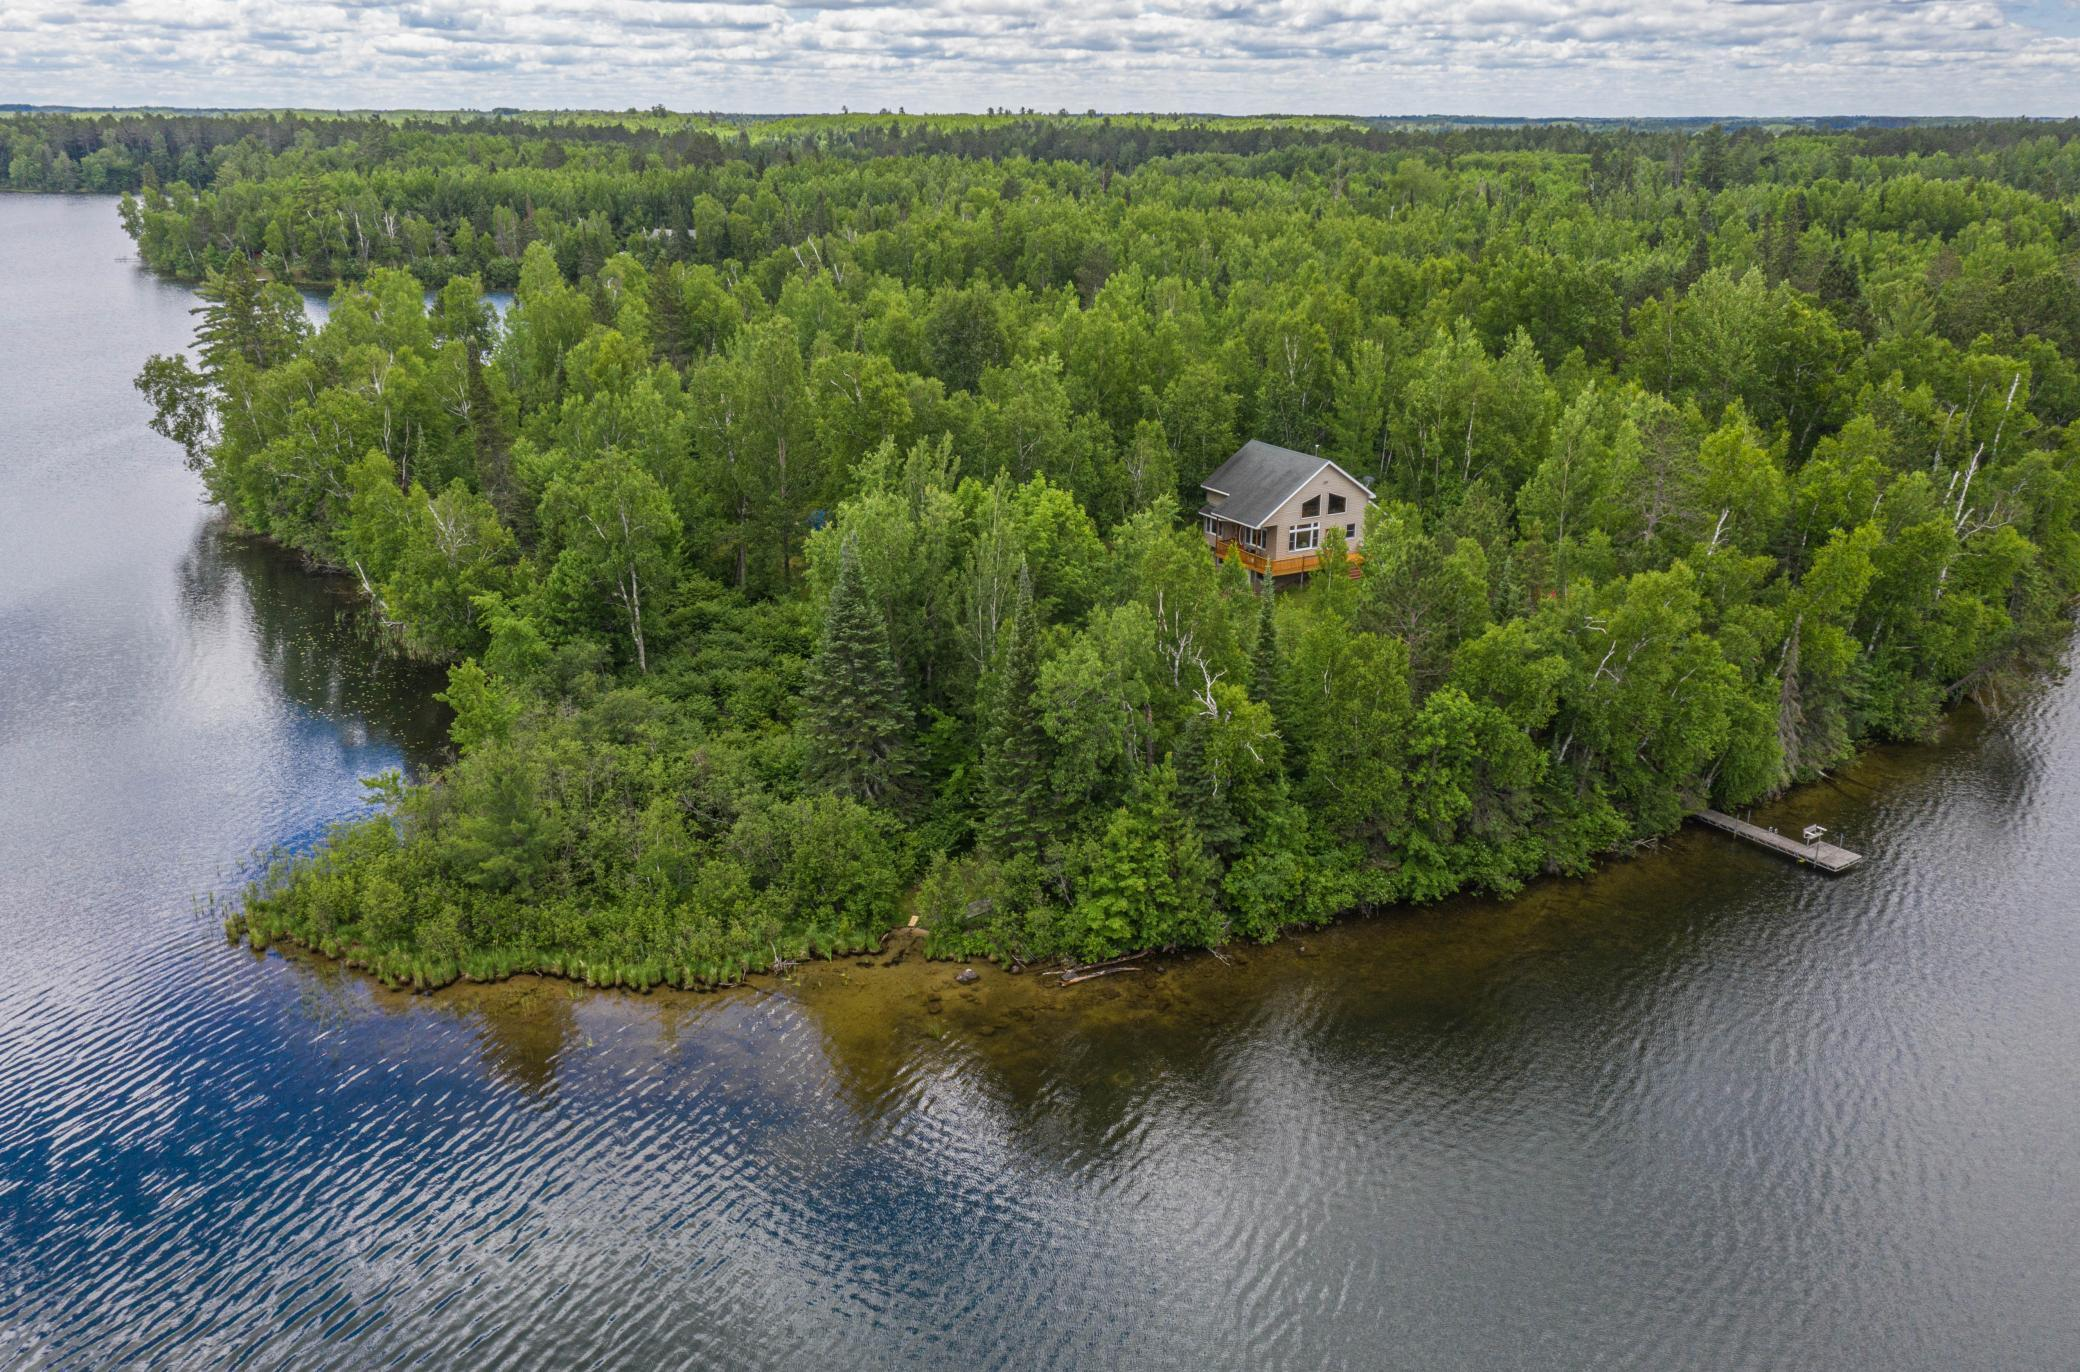 Looking for a retreat that's off the backroads? This remote 3brm year-around home could be just the ticket. Wooded point with 660 feet of lakeshore, a swim area and not a neighbor in sight from the home. Open floor plan, loft, main floor laundry and newly finished walk out basement. Other features include a double sided fireplace, vaulted ceiling, attached garage, newly refinished deck and compliant septic system.  This is a terrific property in a fantastic year-around recreation area. Don't forget to check out the 3D tour.